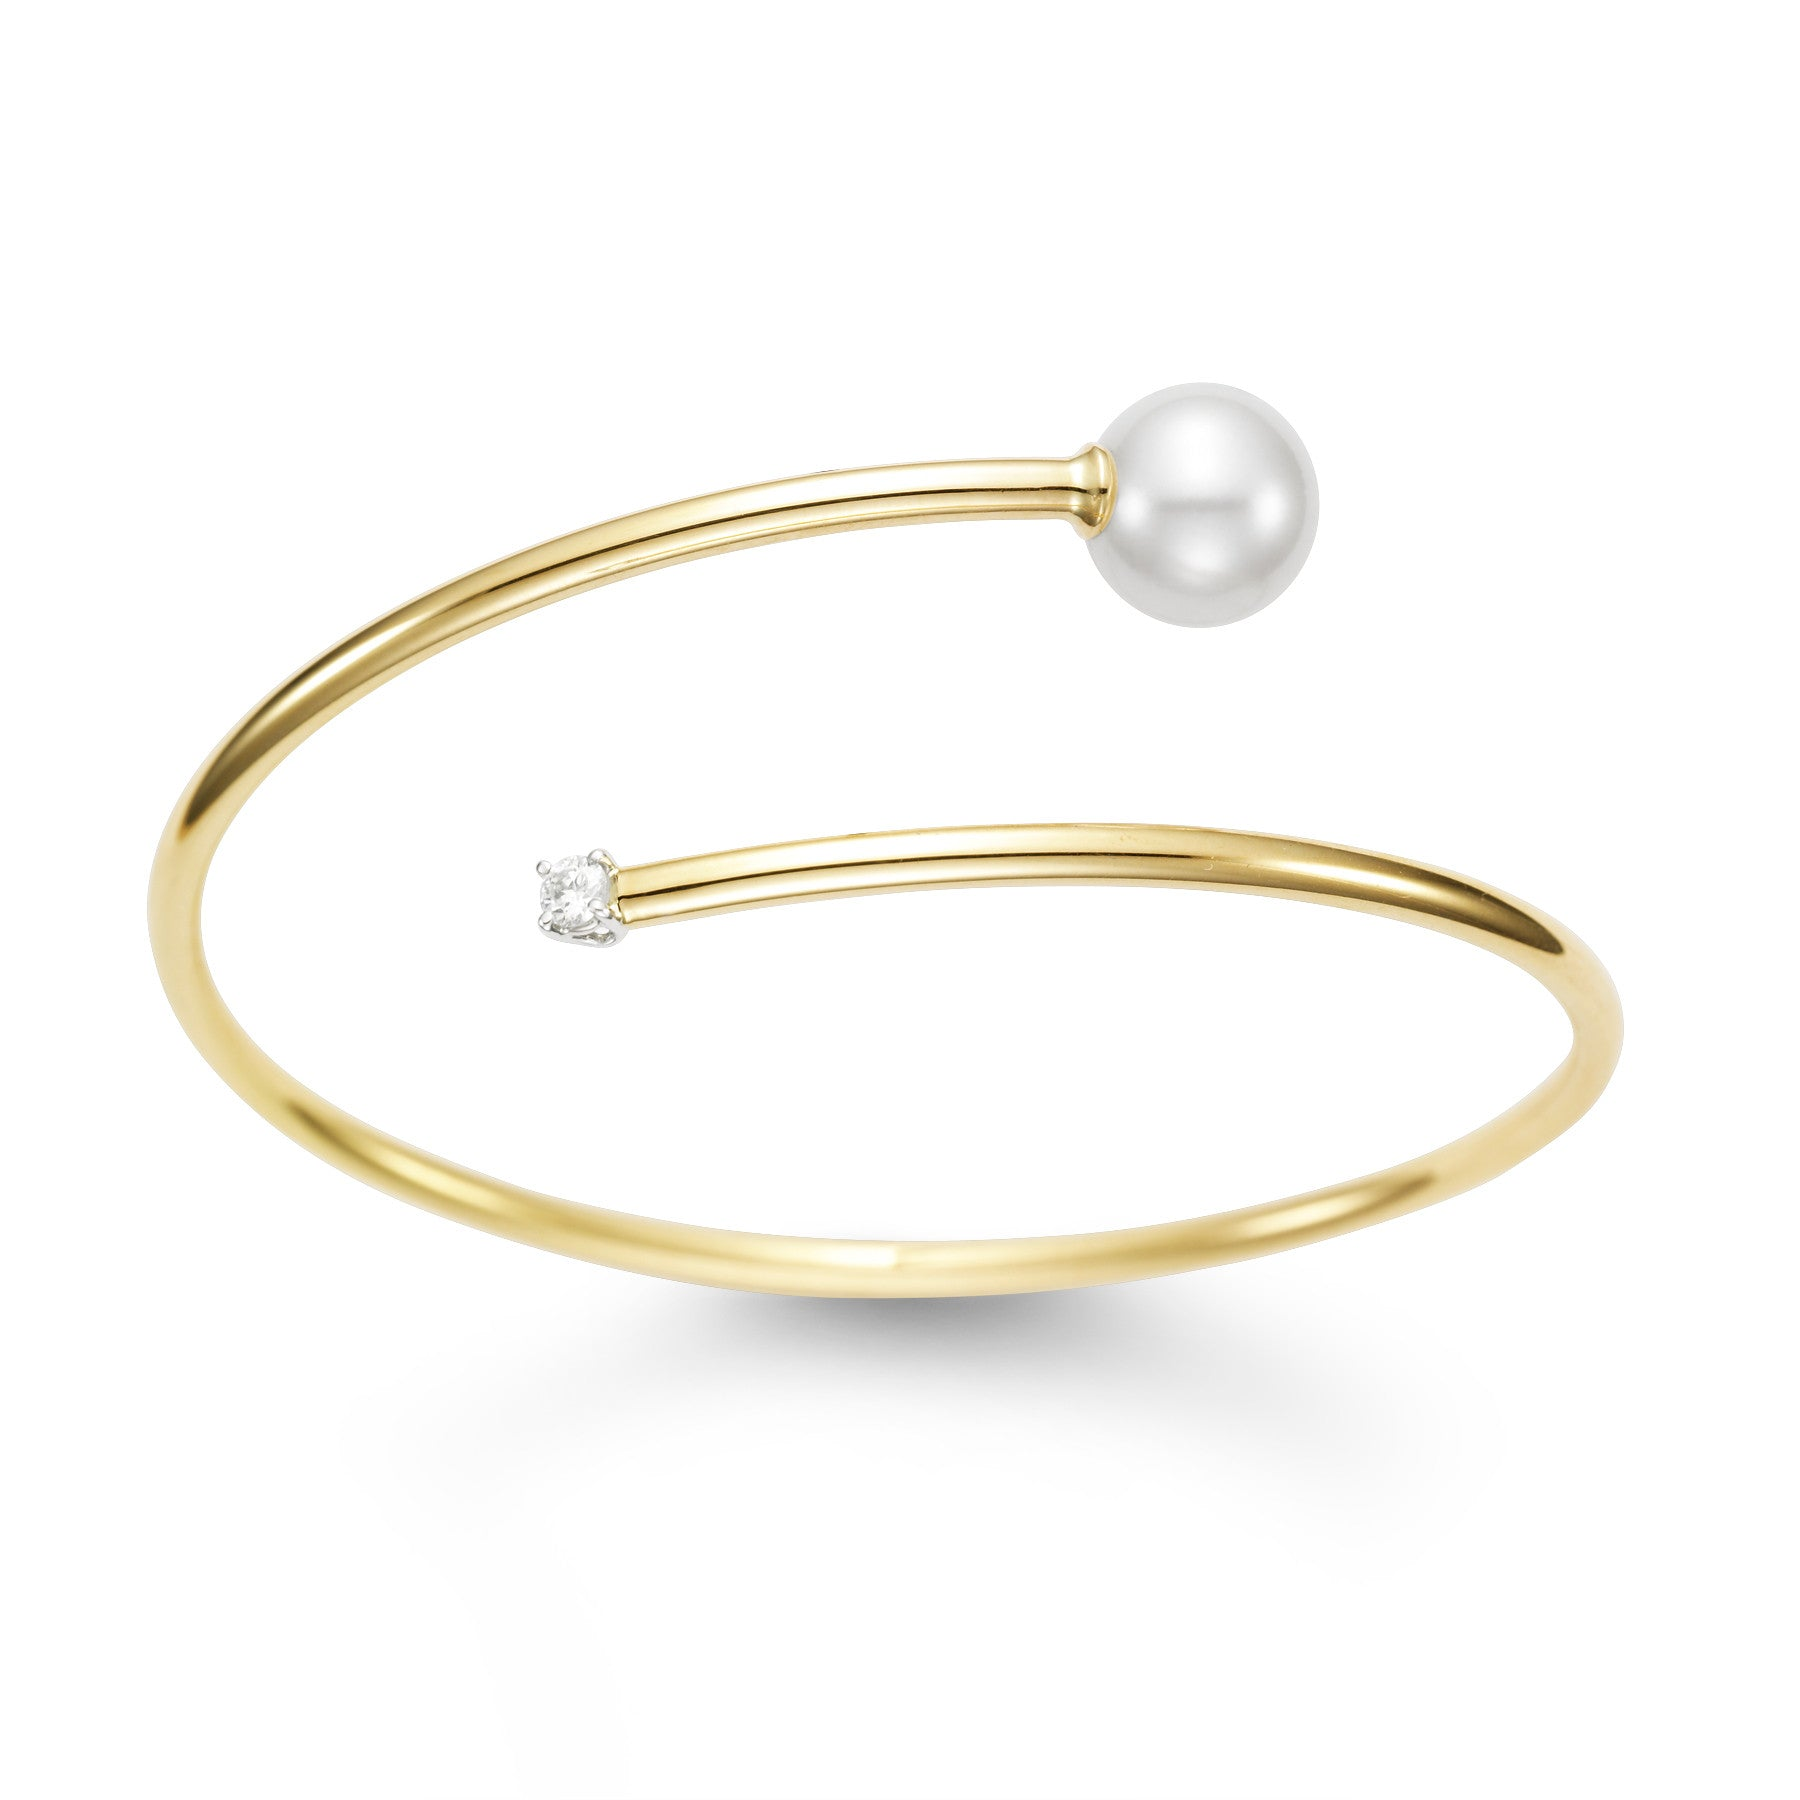 Lovely 18k yellow gold bracelet with Pearl and diamond accent.